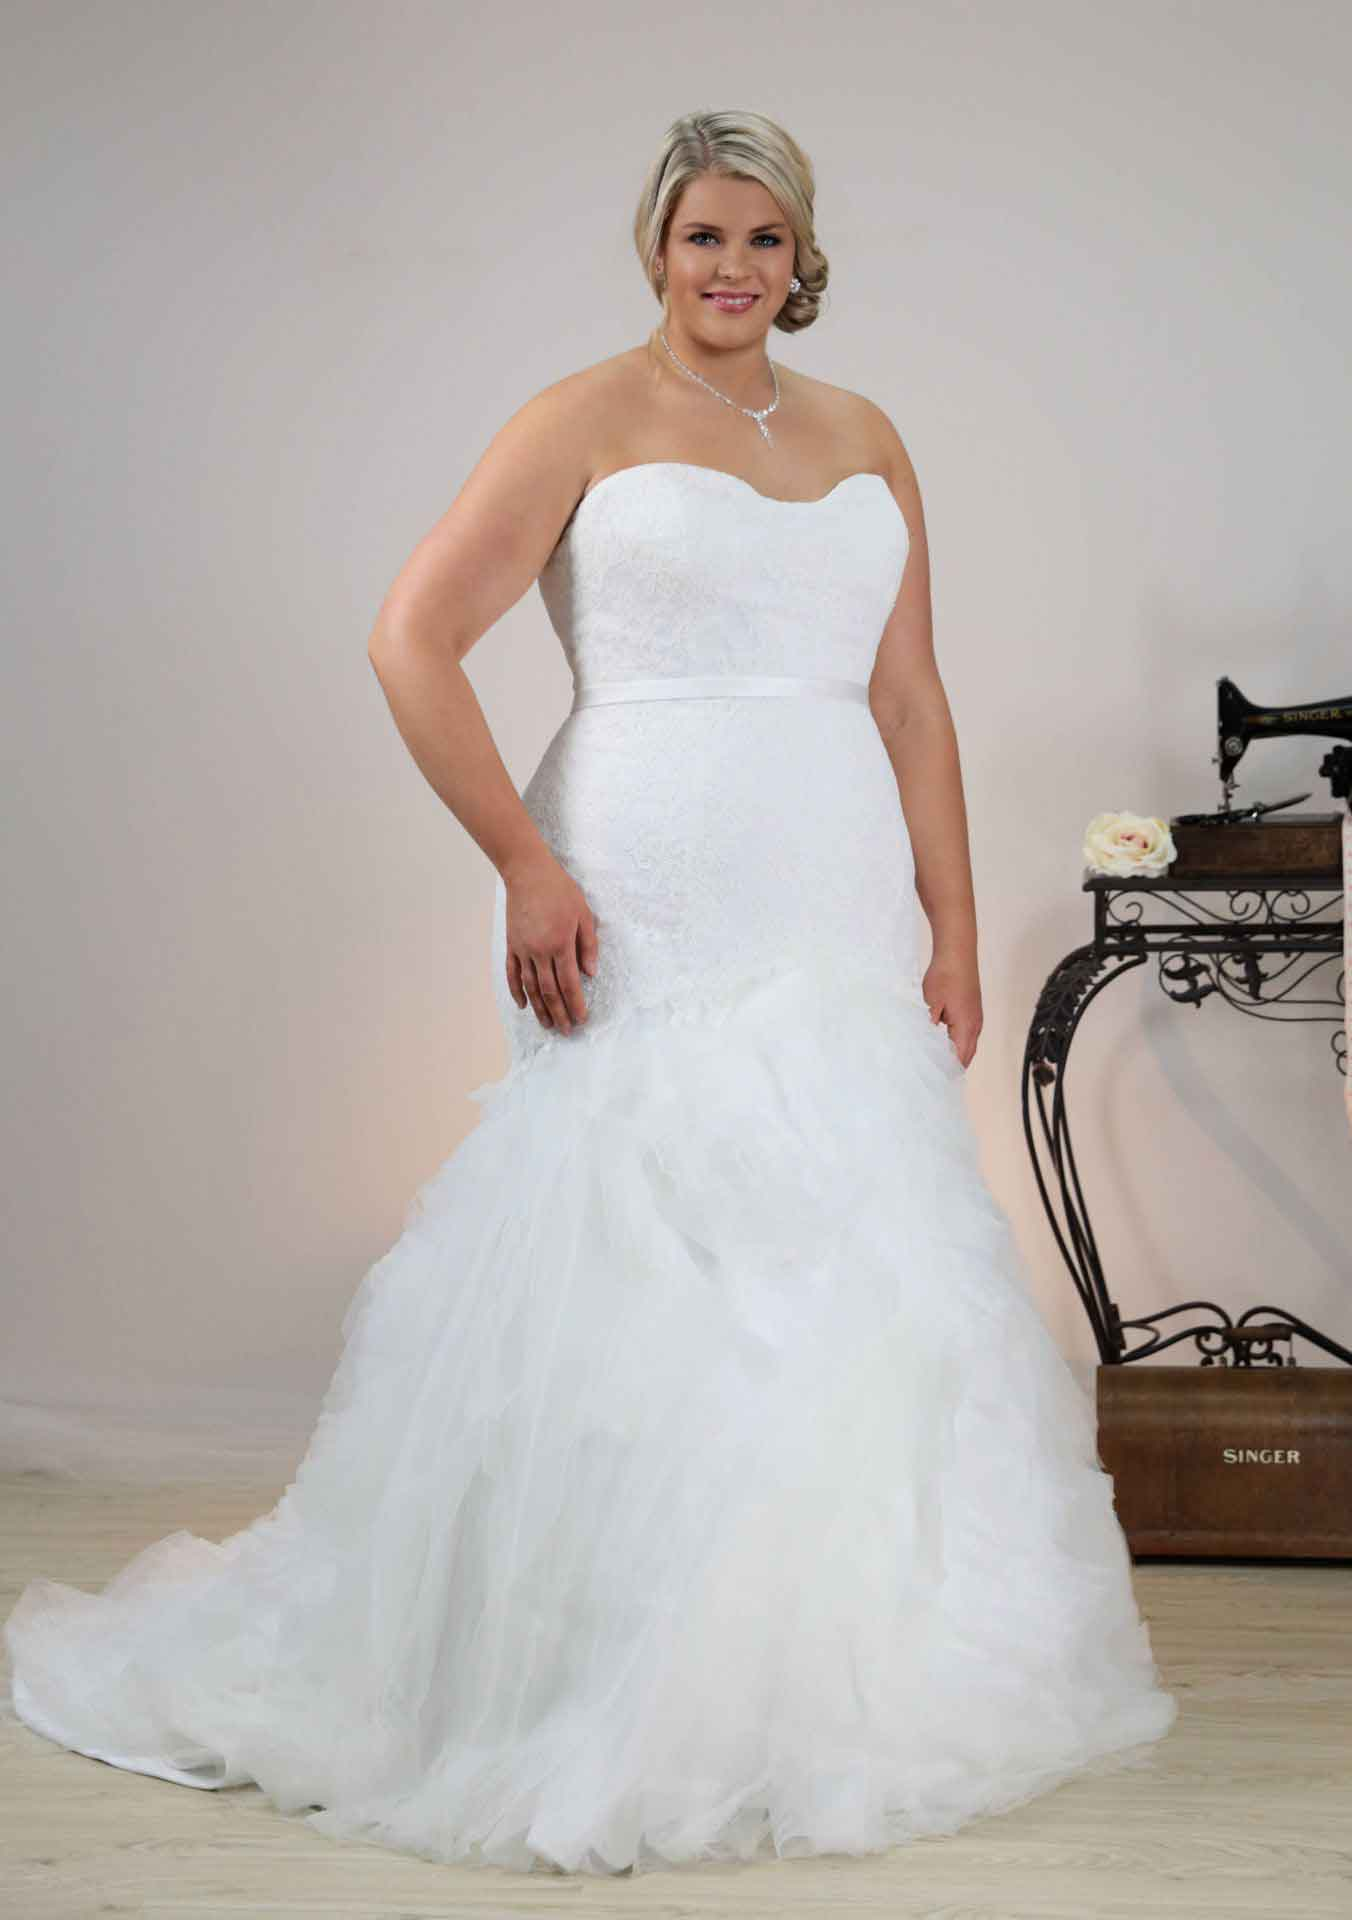 Couture wedding dress style angie wedding dresses melbourne for Couture plus size wedding dresses